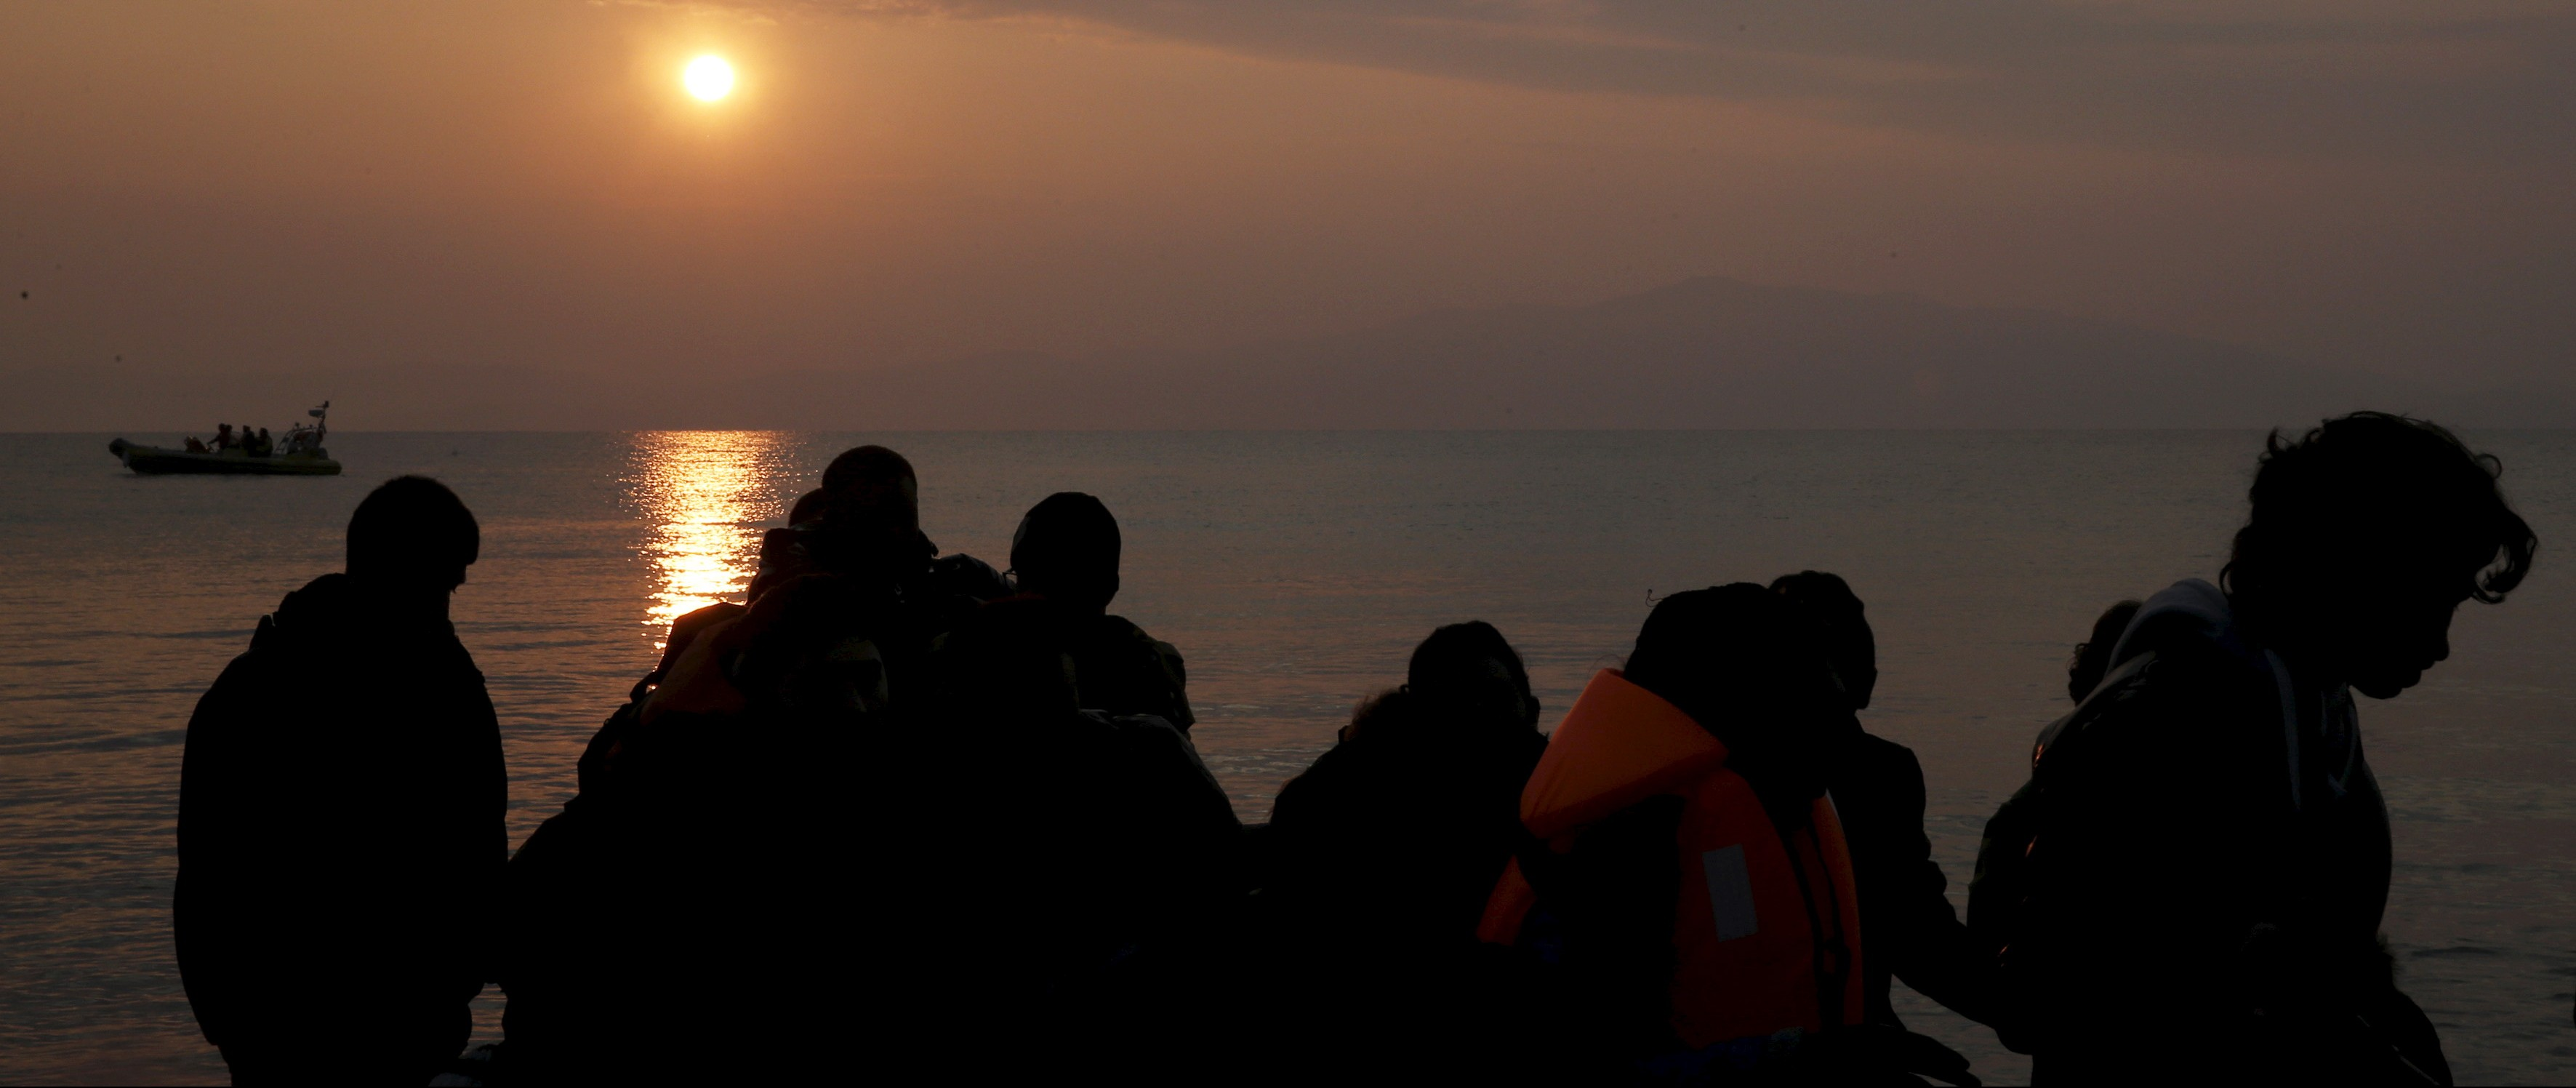 Refugees are silhouetted as they reach the shores of the Greek island of Lesbos on a dinghy during sunrise, March 20, 2016. REUTERS/Alkis Konstantinidis - RTSBA5L